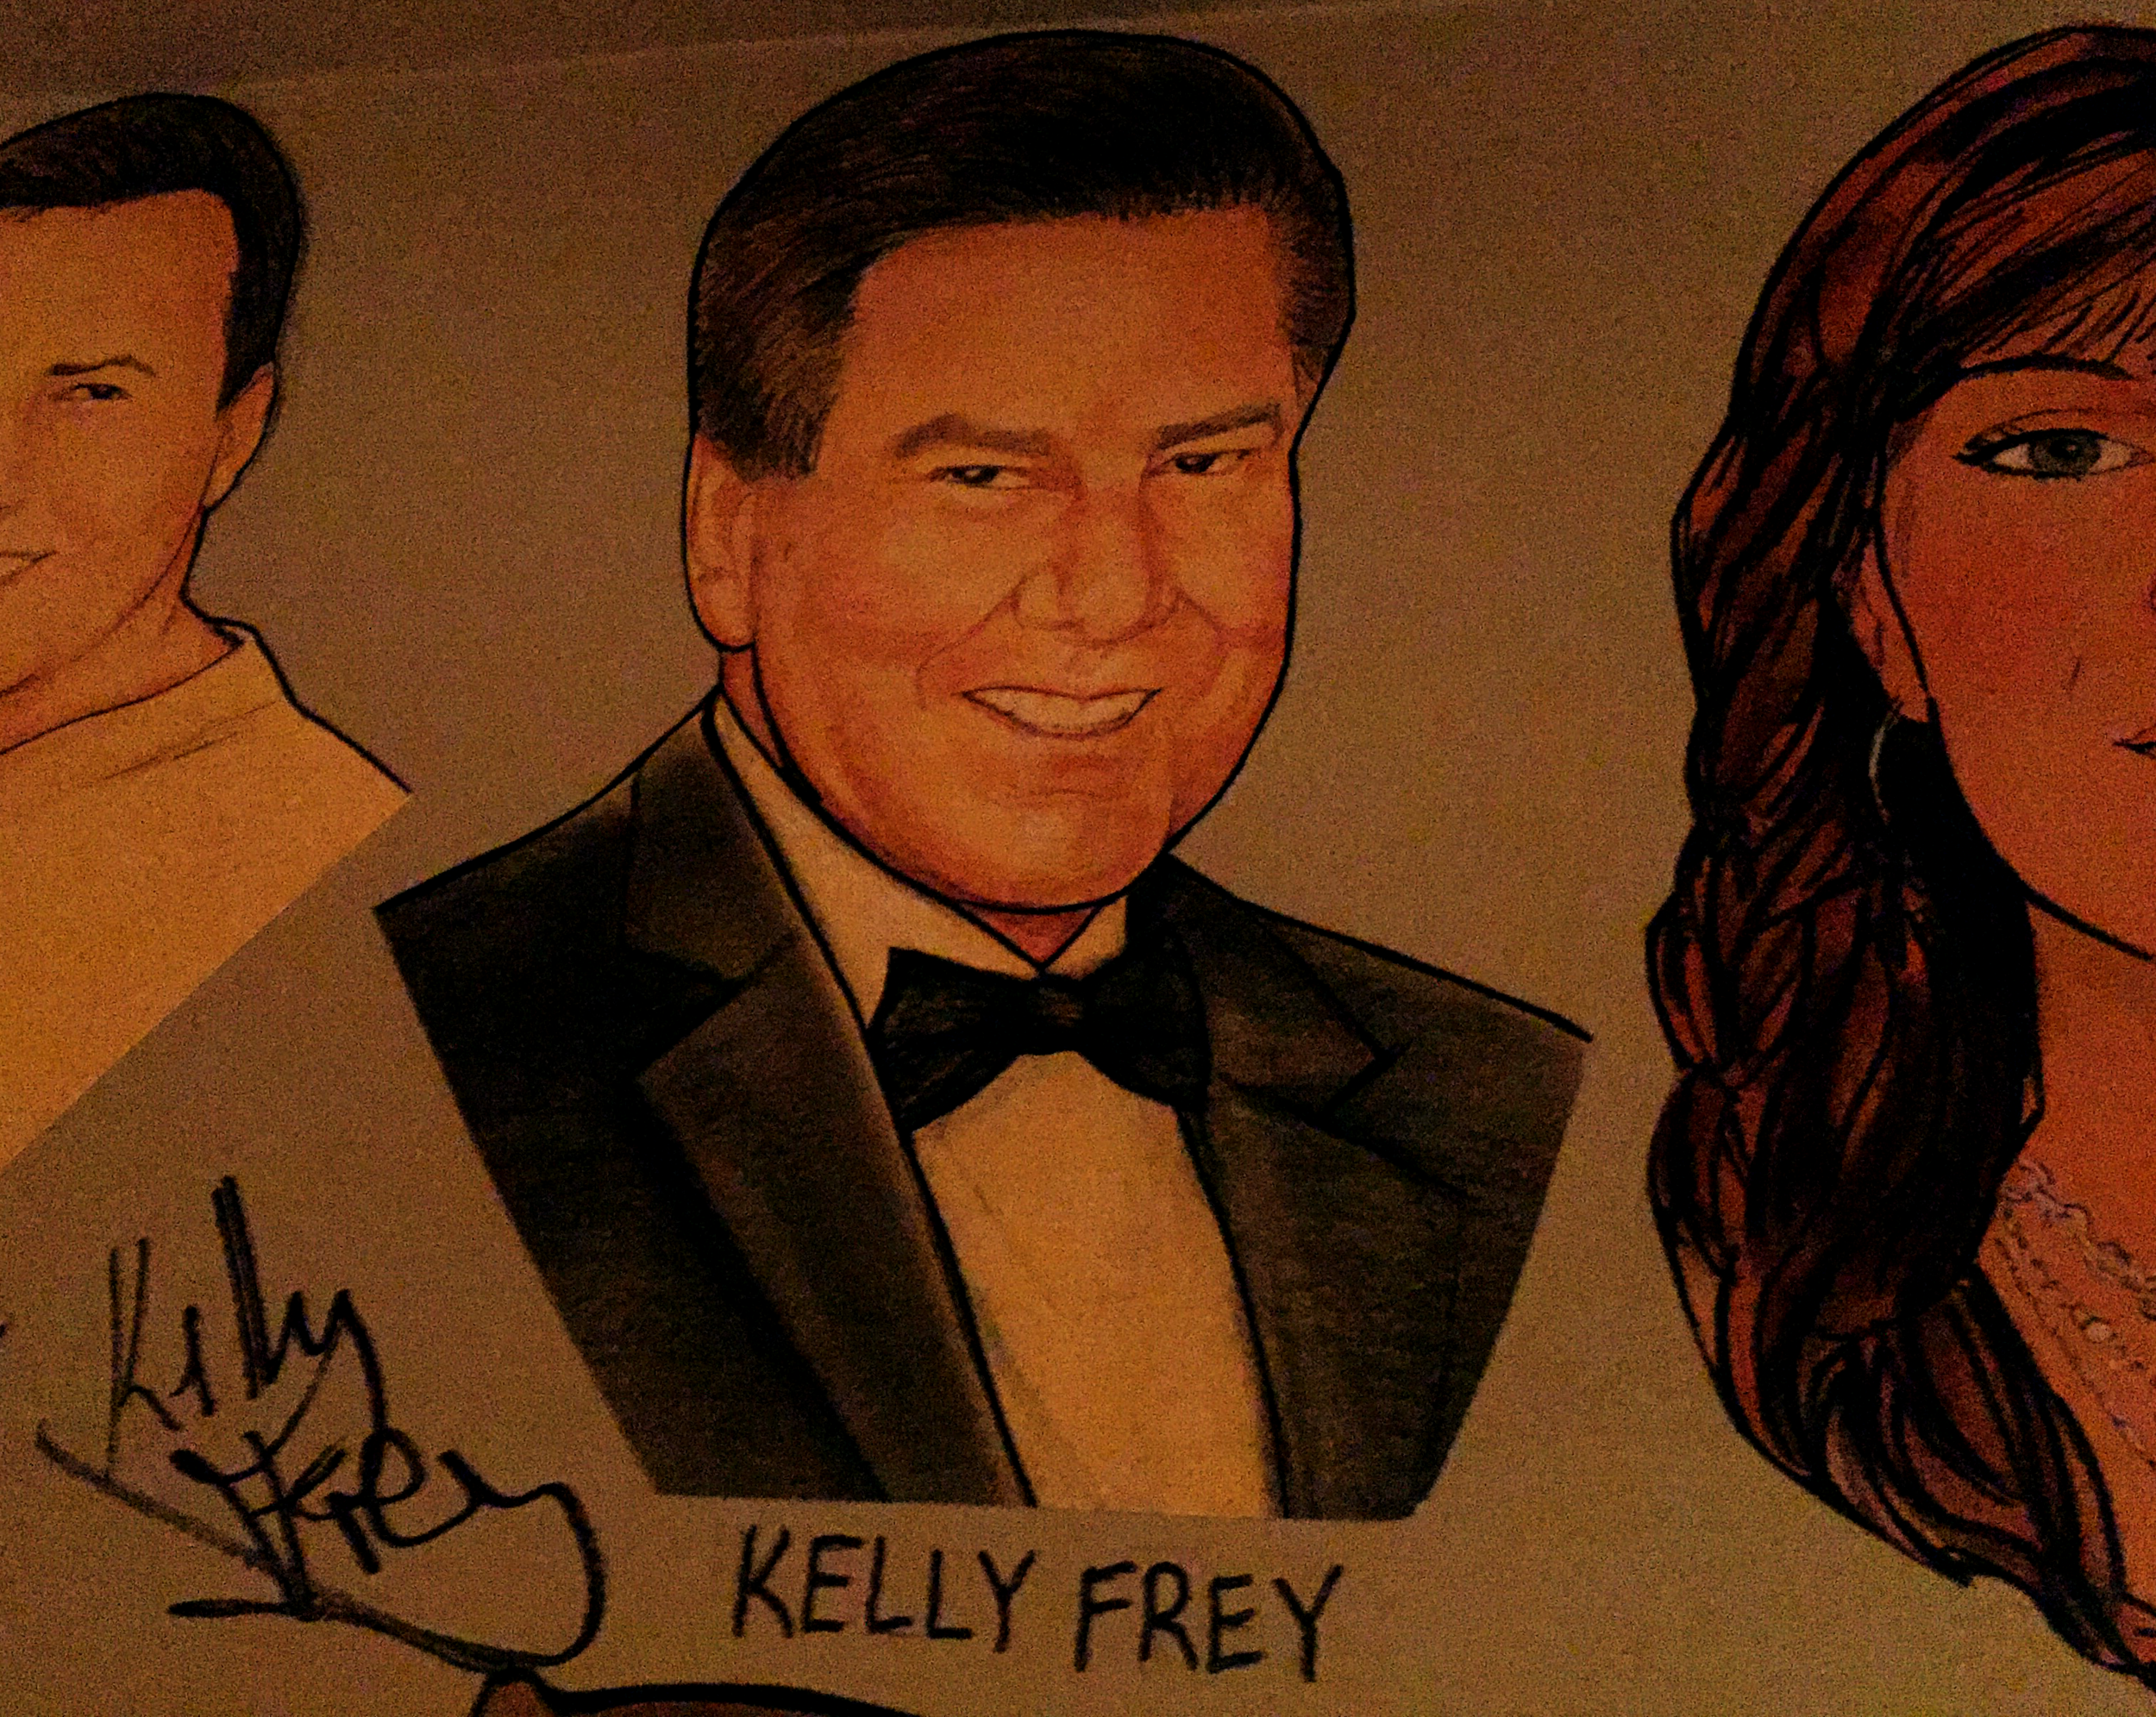 signing today for Kelly Frey's portrait at The Palm Restaurant In Nashville. April 11, 2017